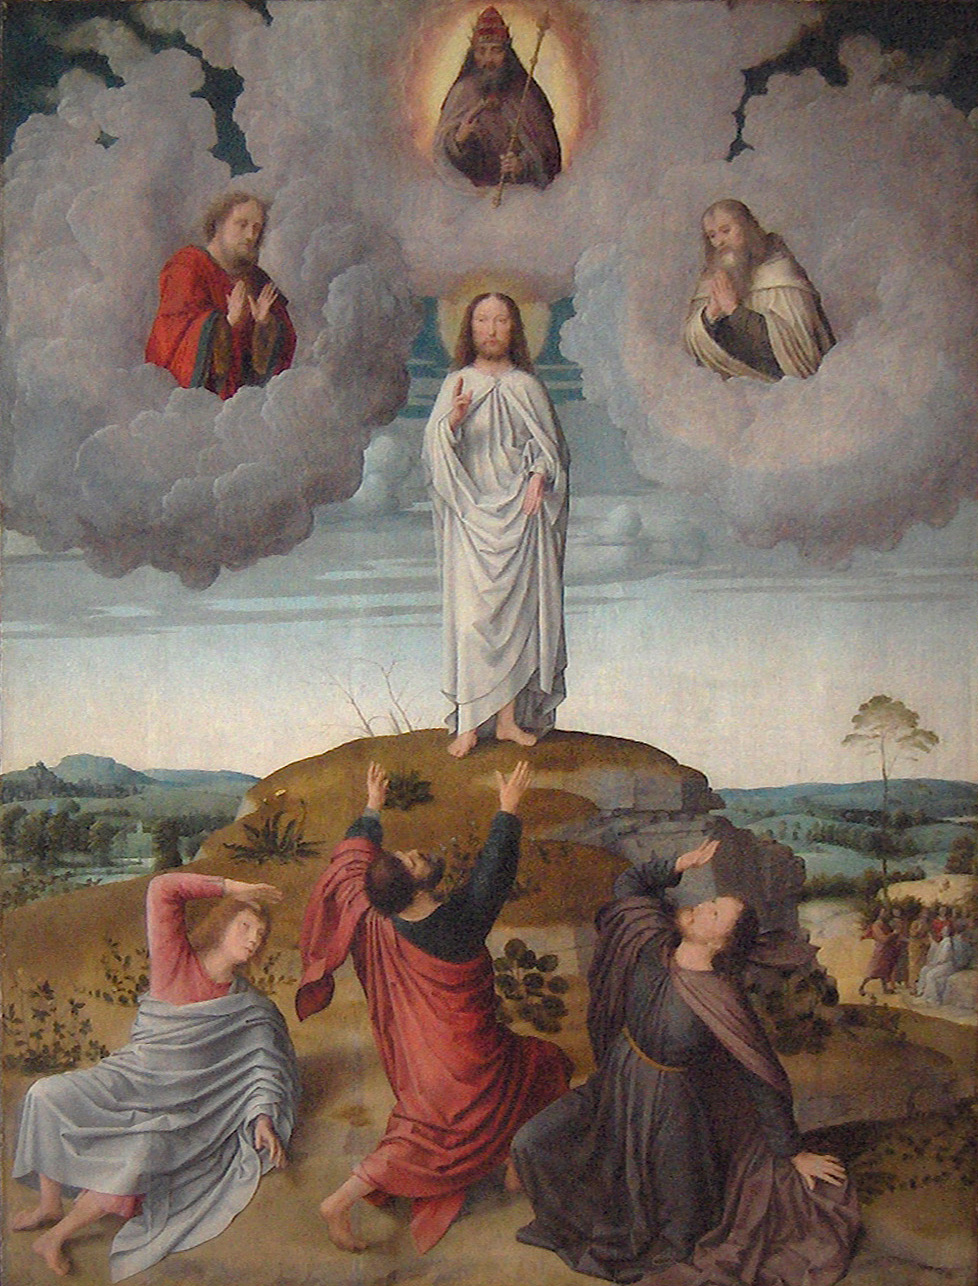 Dymphna's Road: The Transfiguration